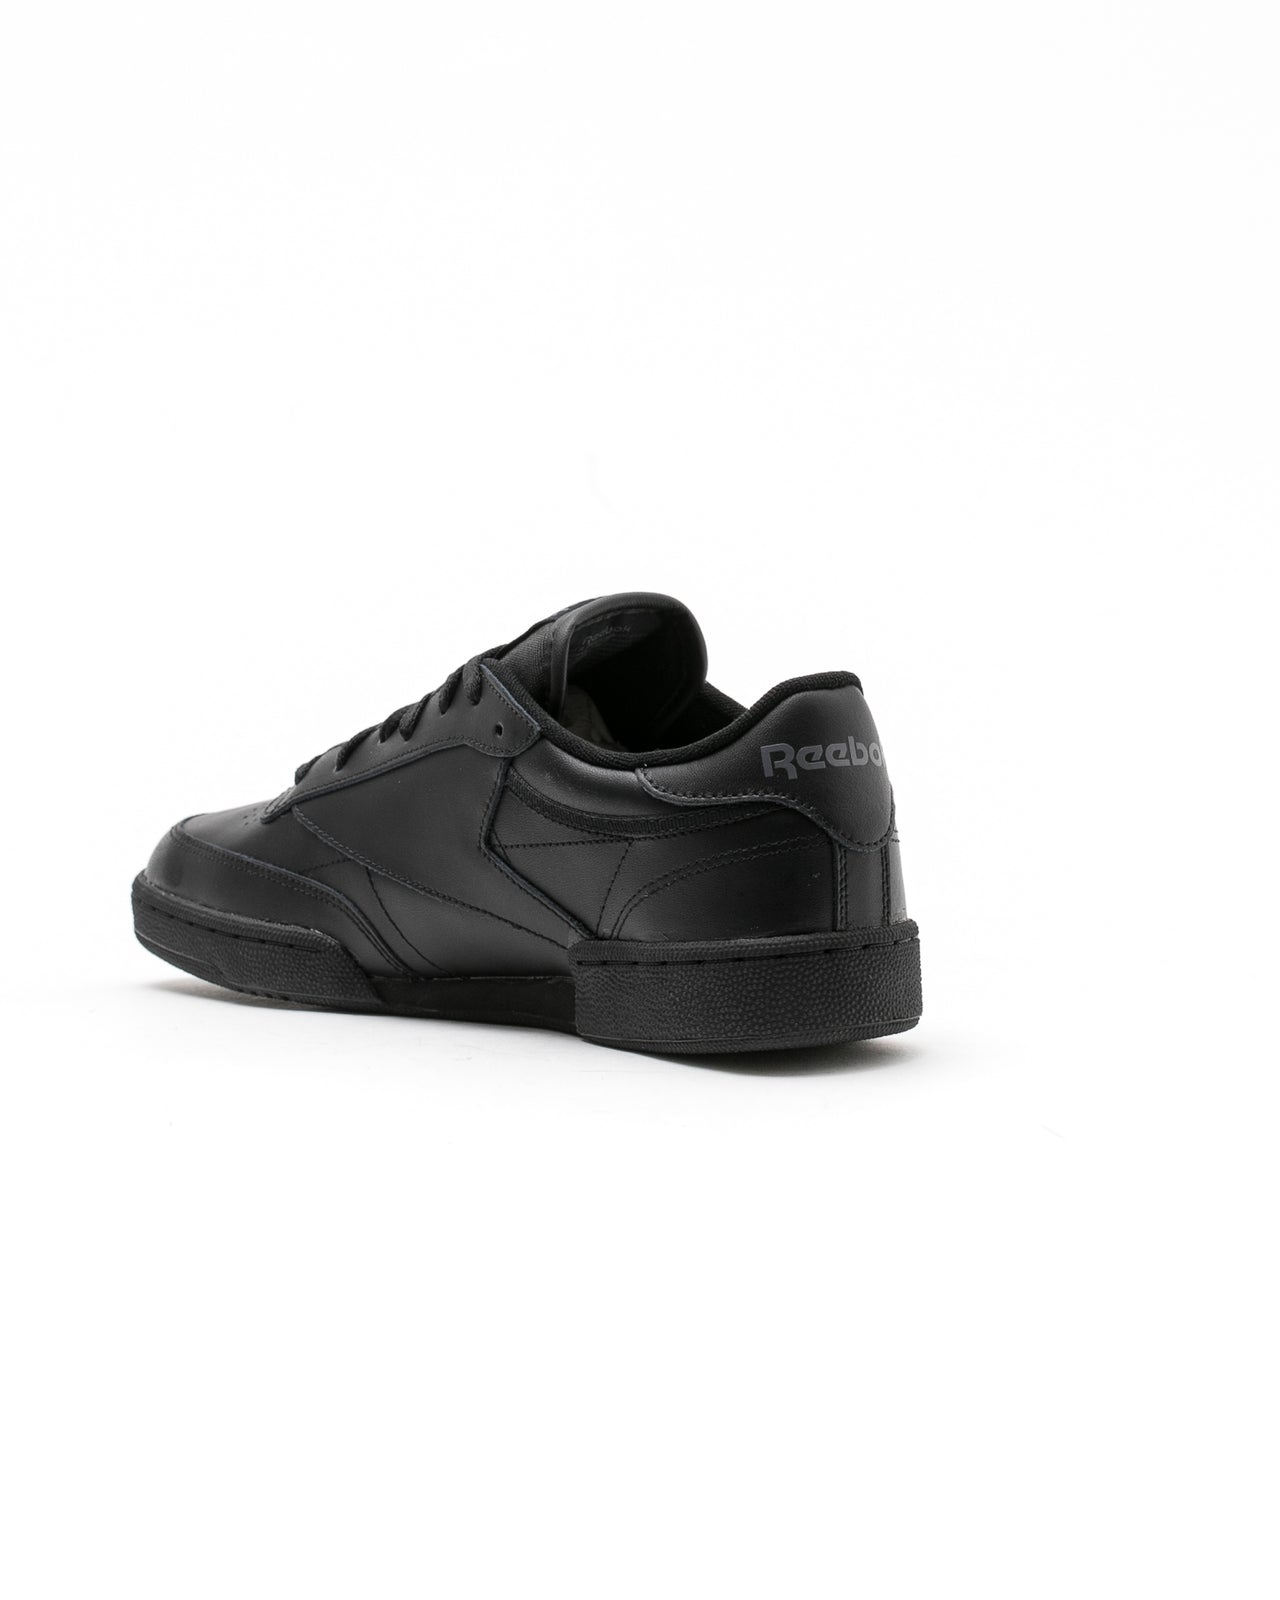 Club C 85 - Color: Black/Charcoal | Black